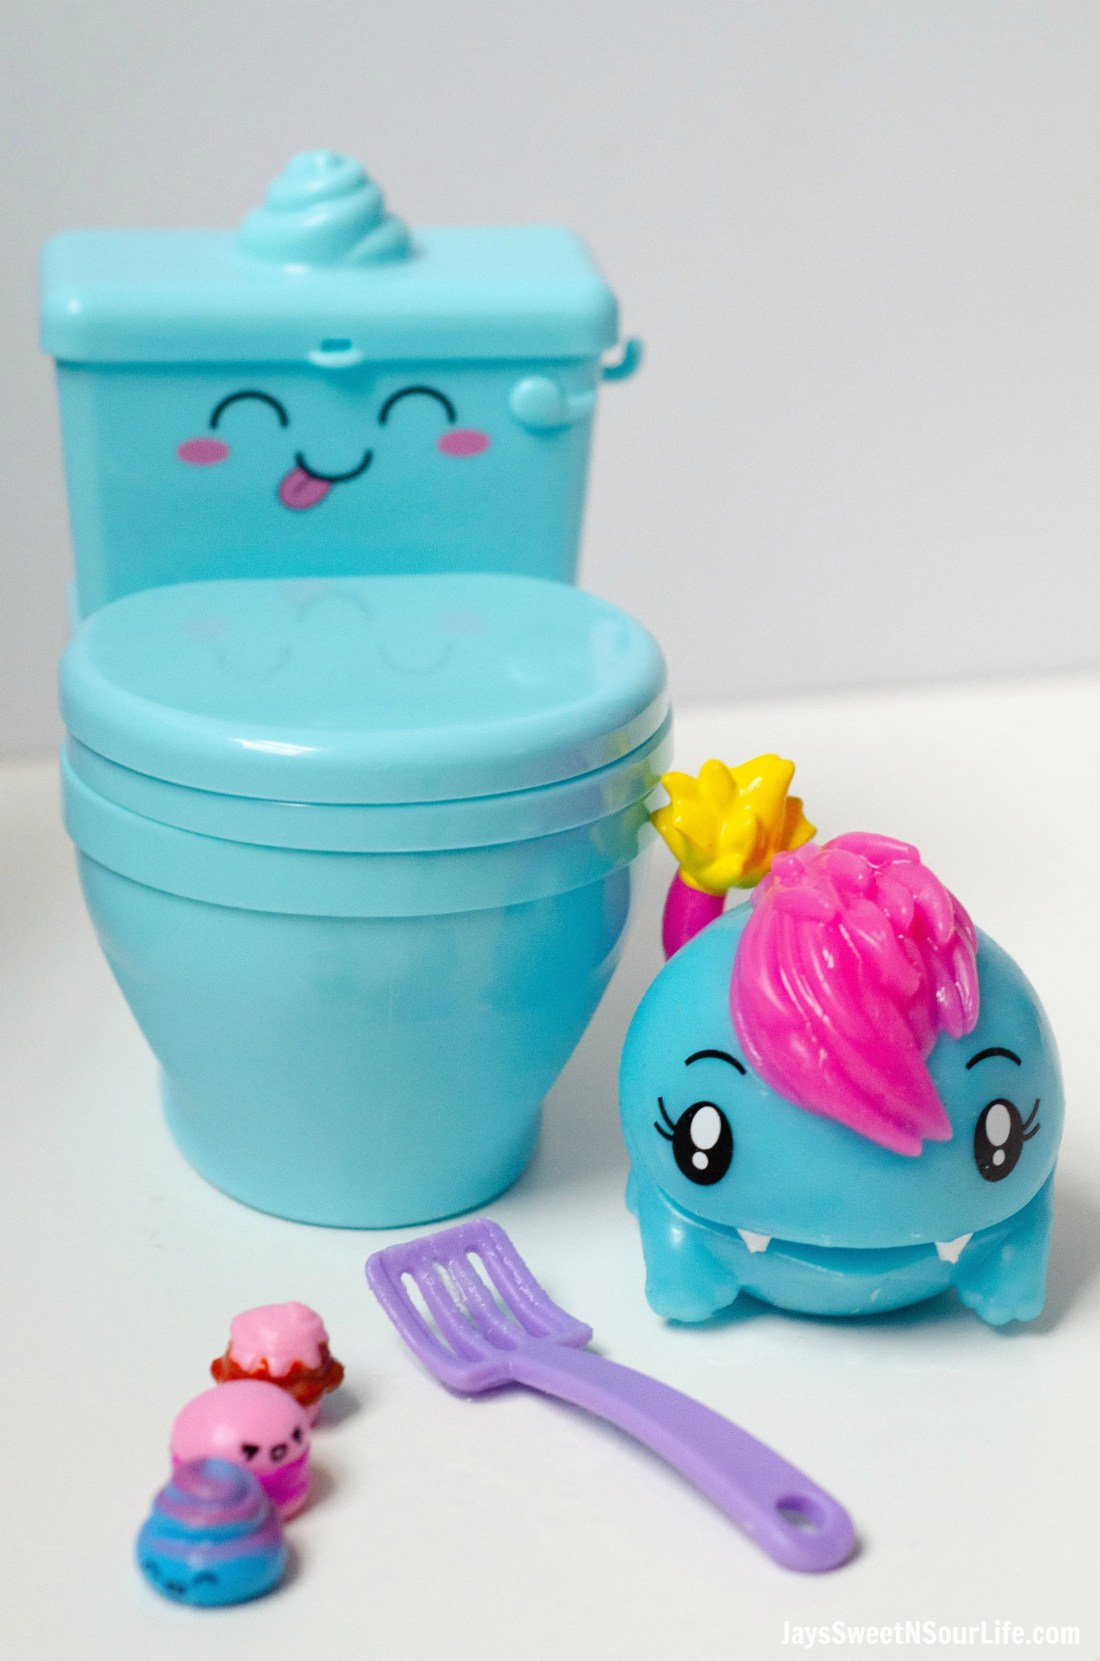 Pooparoos Packaging With Toilet toys and scooper. Pooparoos are full of fun surprises and tons of fun for all.